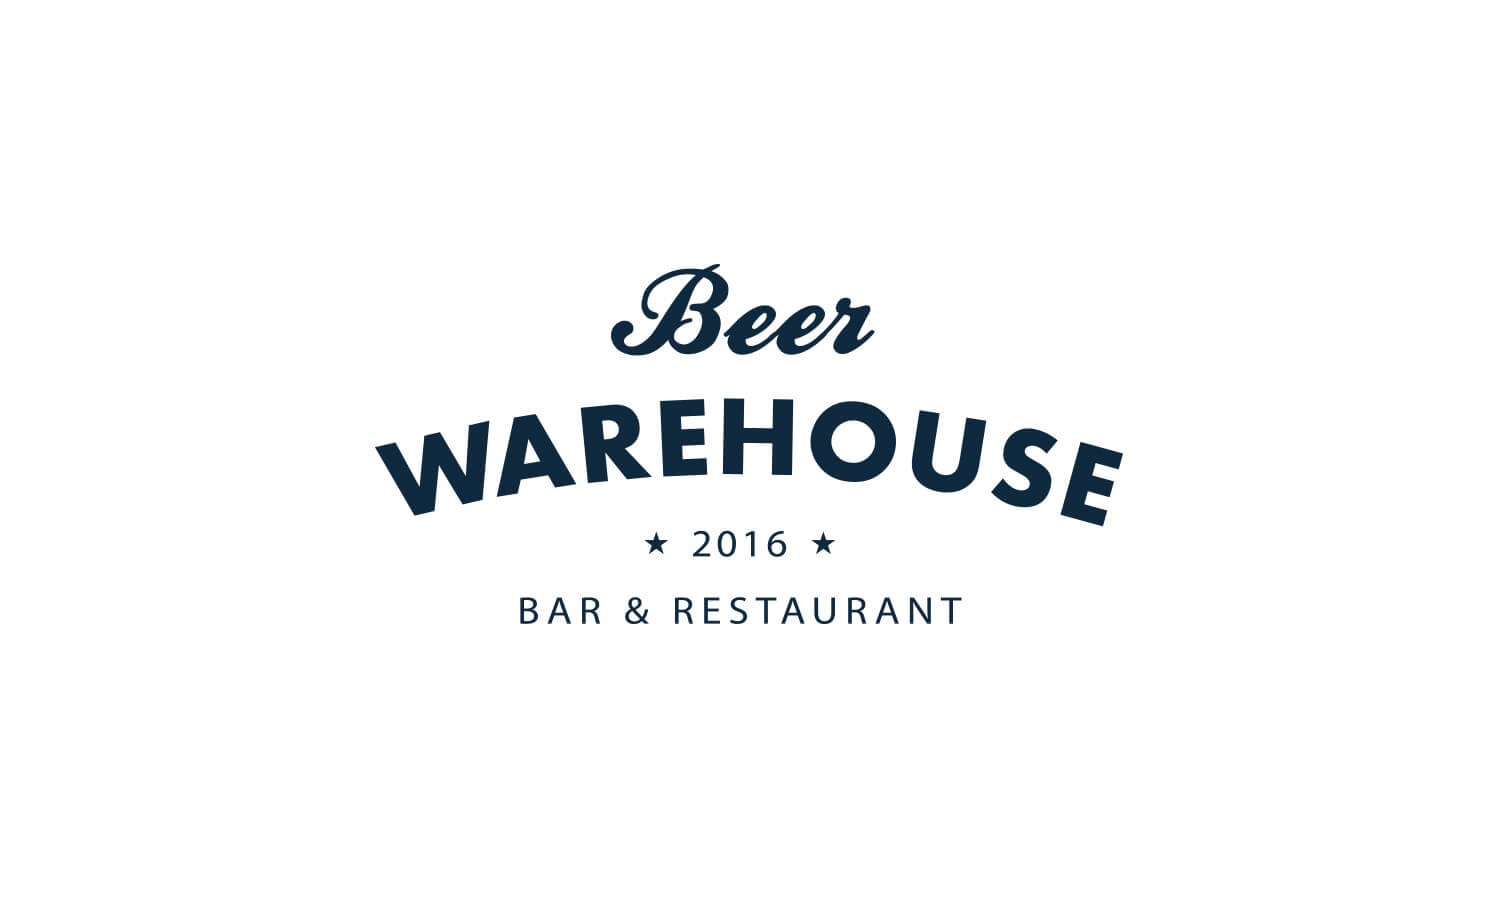 Beer Warehouse